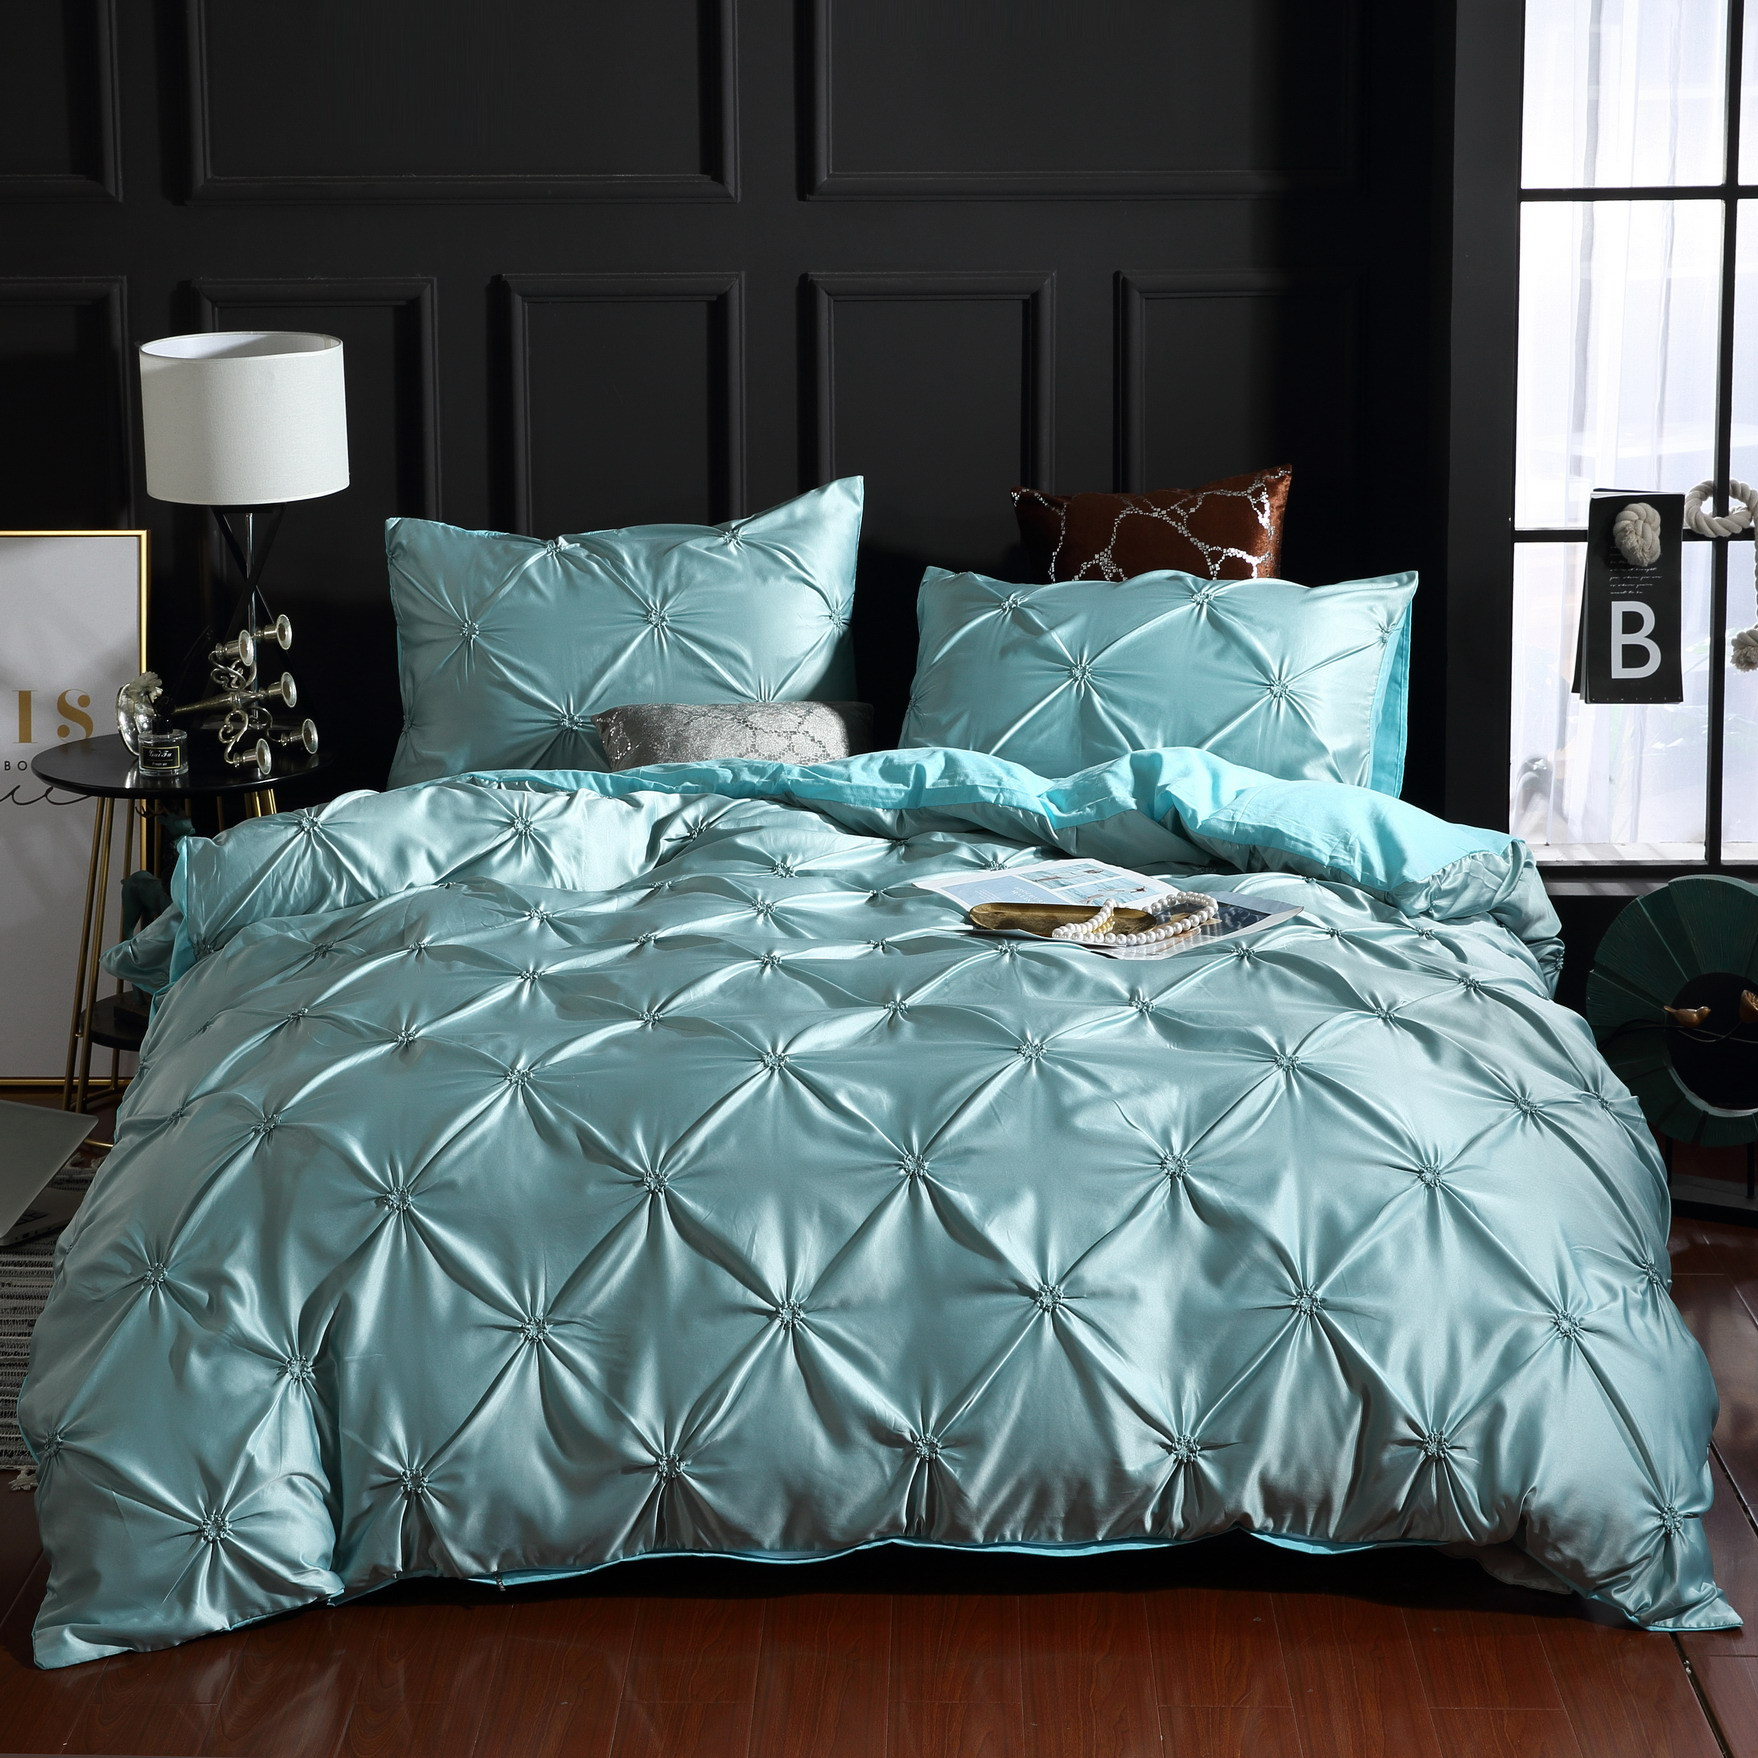 Pintuck Rapport Duvet Cover Luxury Pin Pleat Bedding Quilt Sets Queen Full King